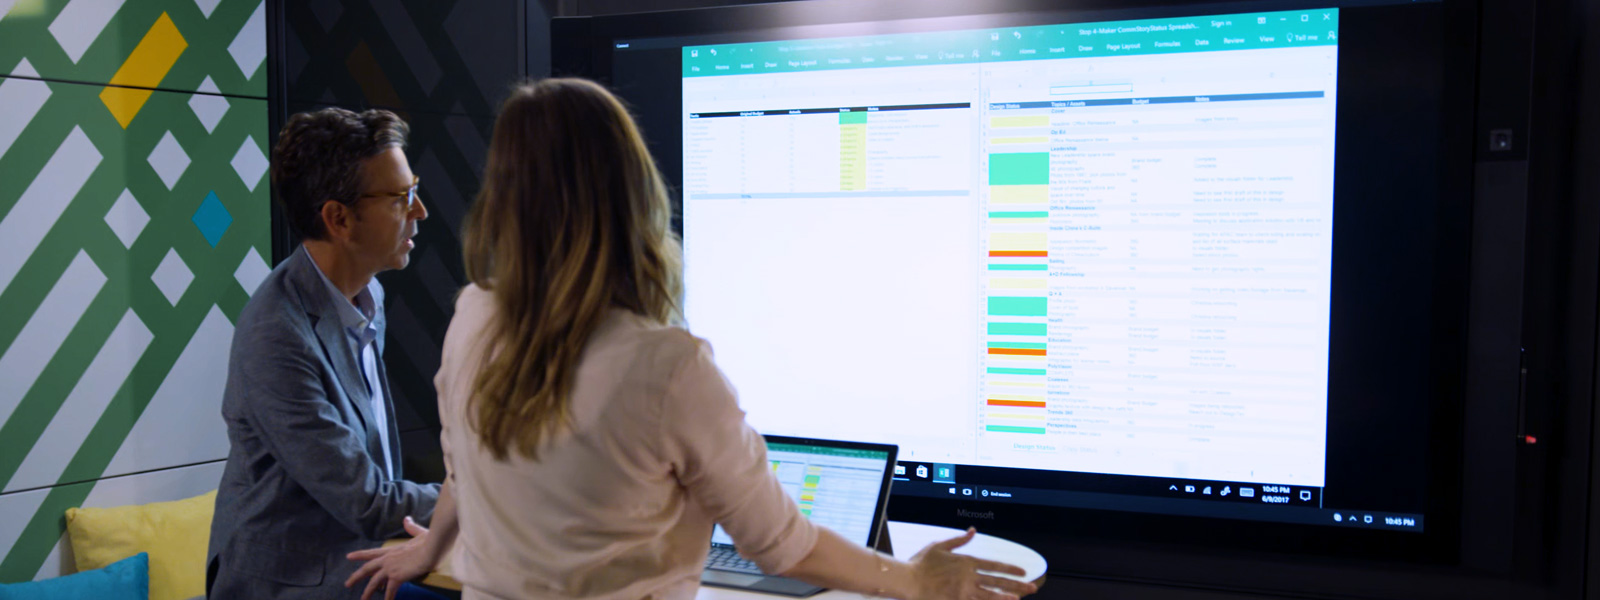 One of the 5 Steelcase spaces designed to work well with Surface devices, where a woman and a man are using a Surface Hub.